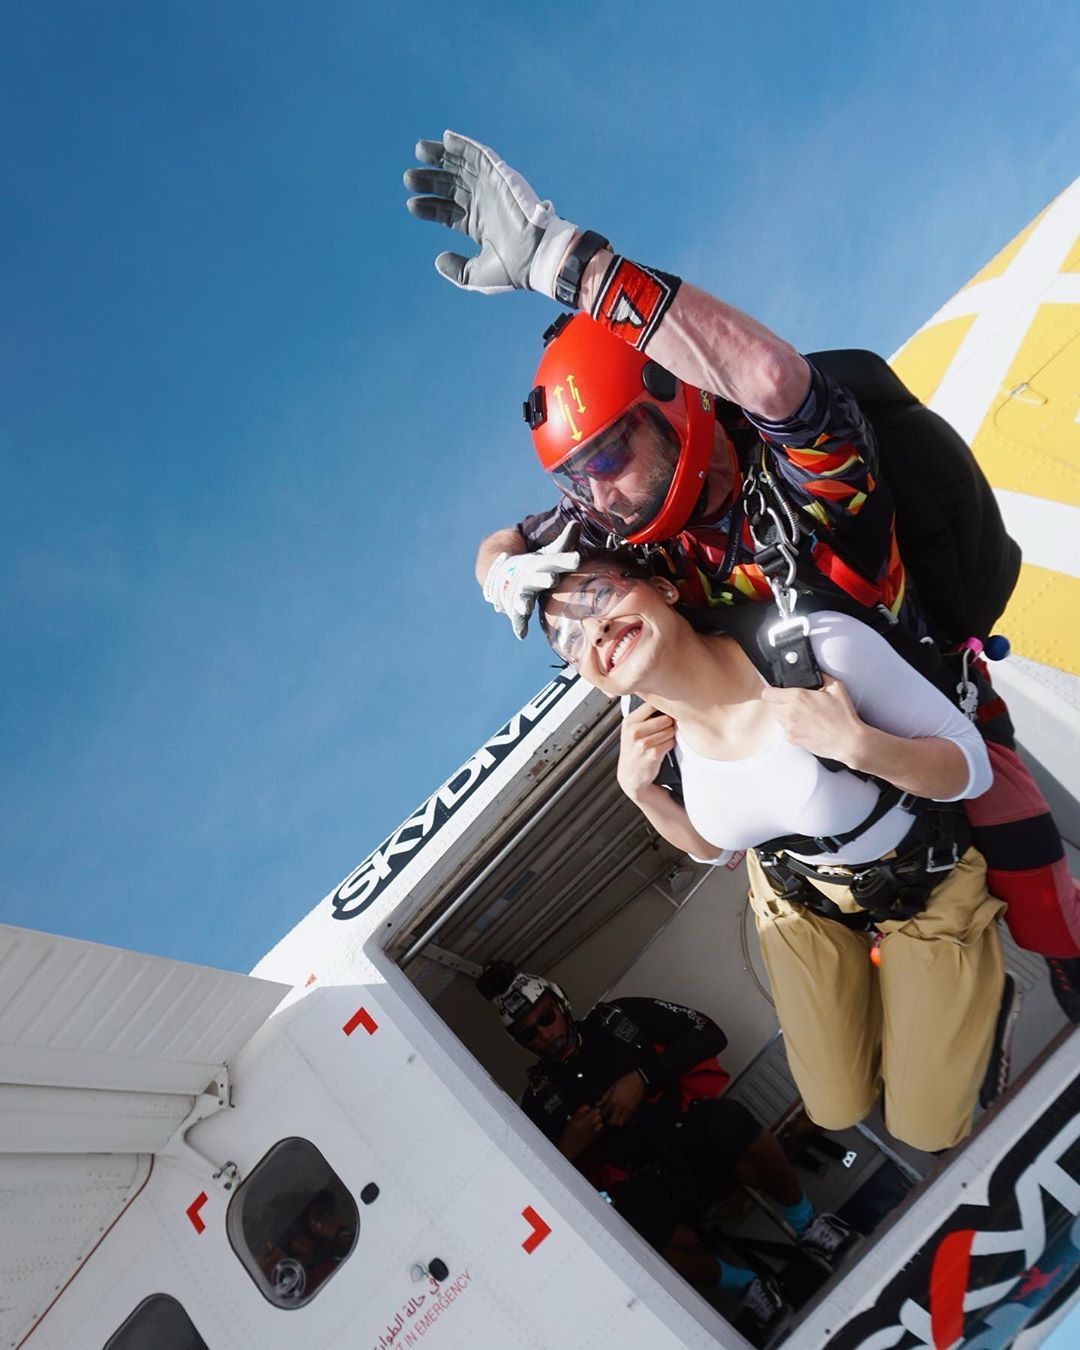 Skydiving With Friends Play Time 20 000 Ft There S Magic In The Air Come Feel It Tag Ur Skydive Pa Indian Celebrities Holden Celebrity Fashion Looks